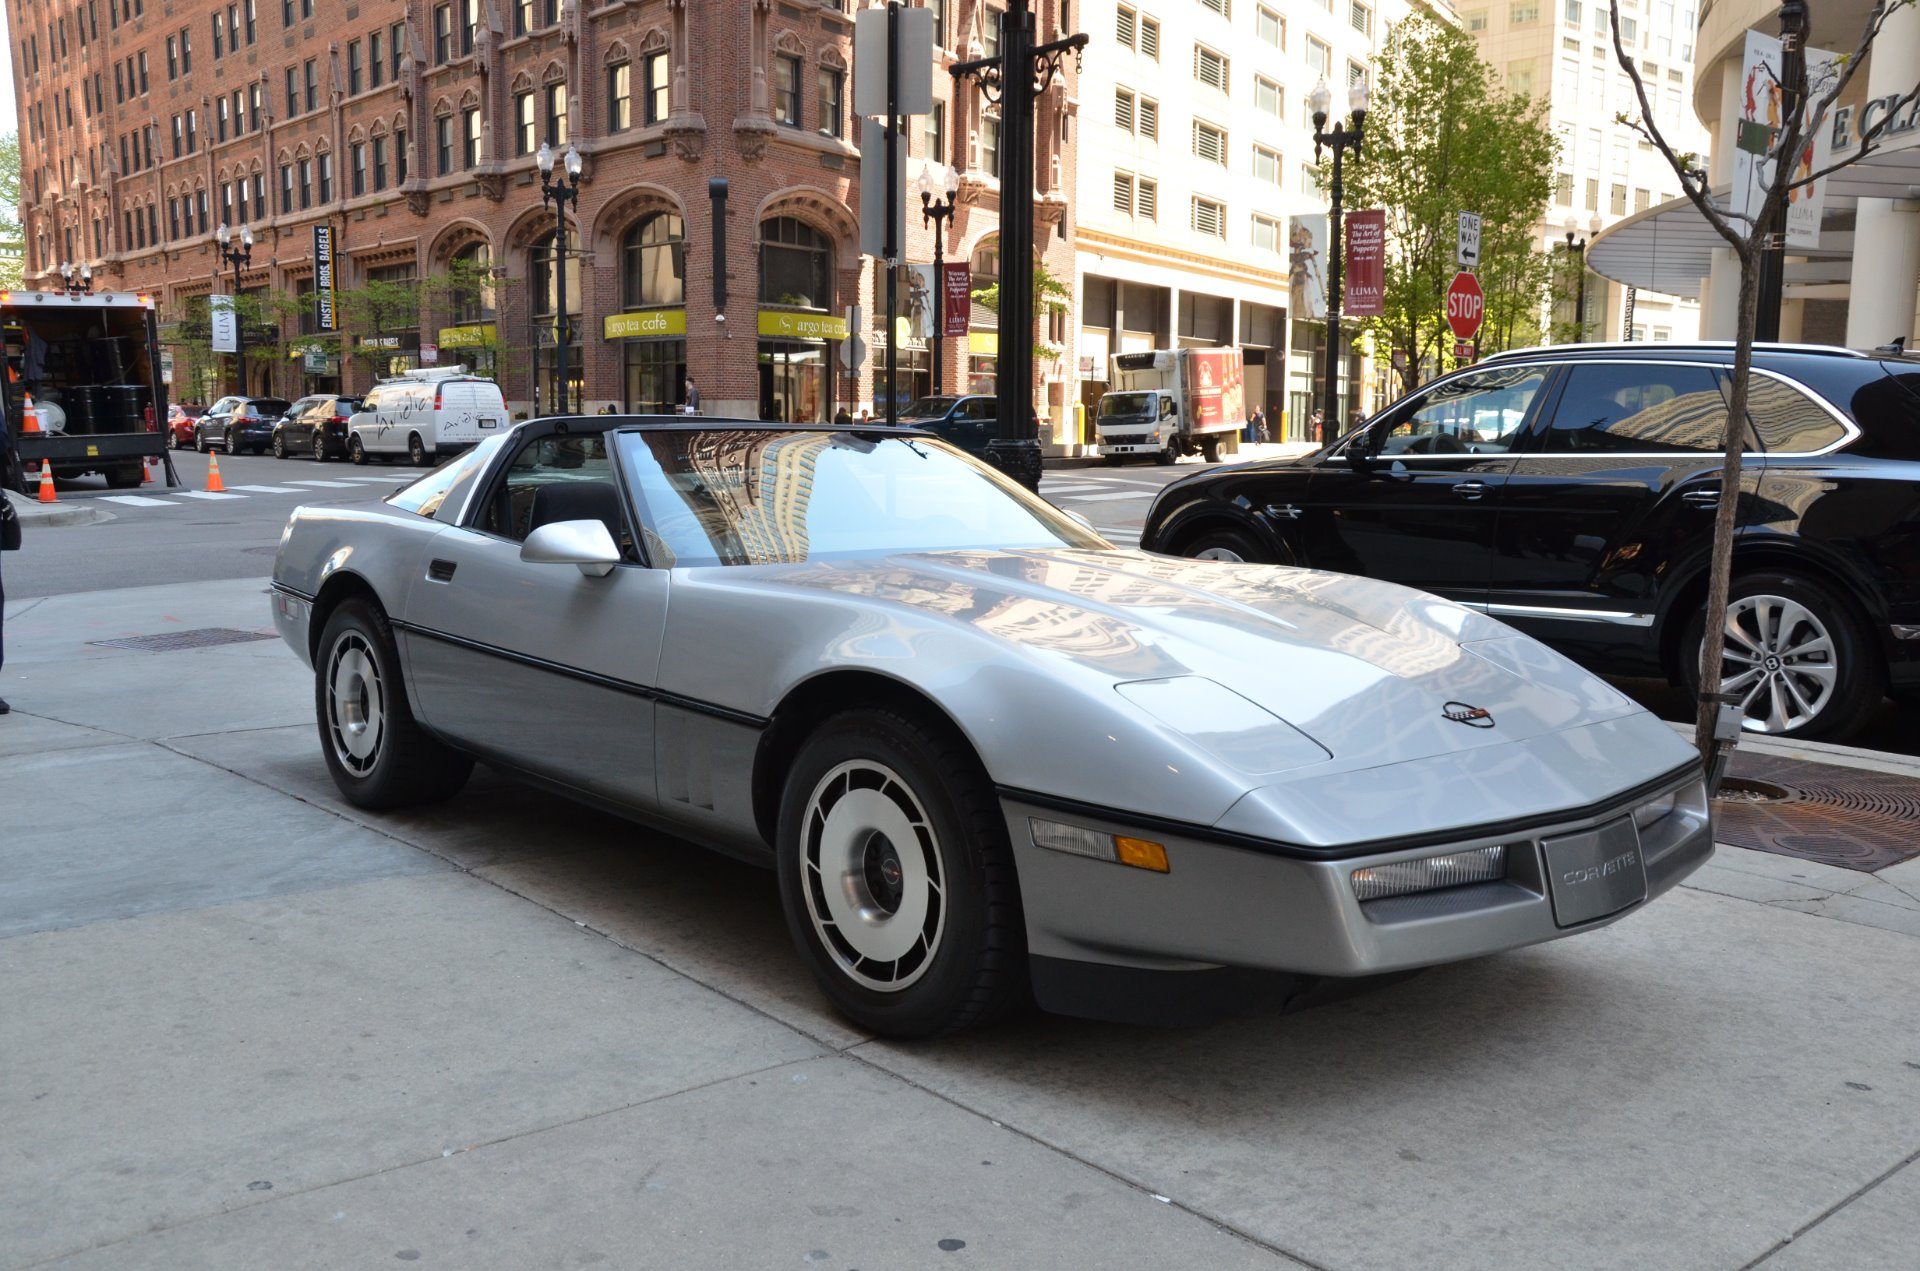 1985 chevrolet corvette stock l319aab for sale near chicago il il chevrolet dealer. Black Bedroom Furniture Sets. Home Design Ideas